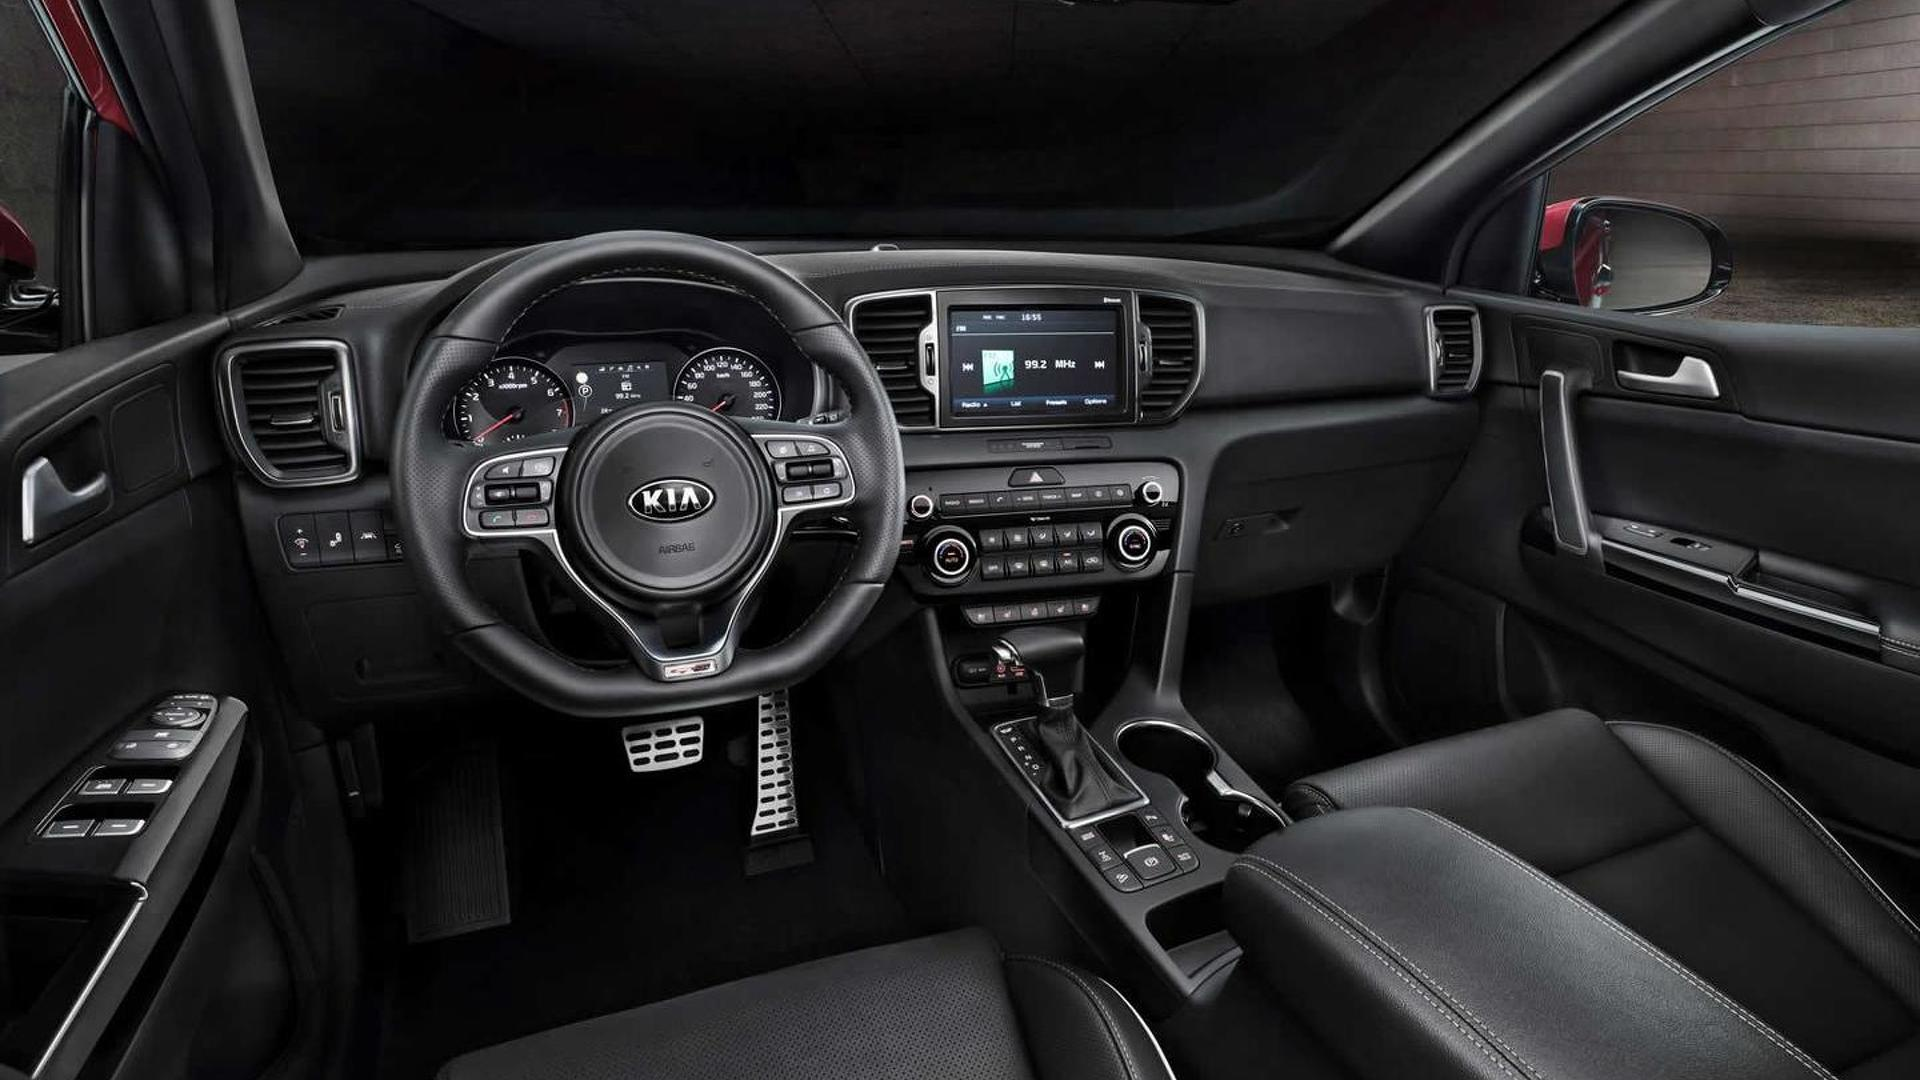 Kia Reveals Interior And Technical Specs Of 2016 Sportage Ahead Of